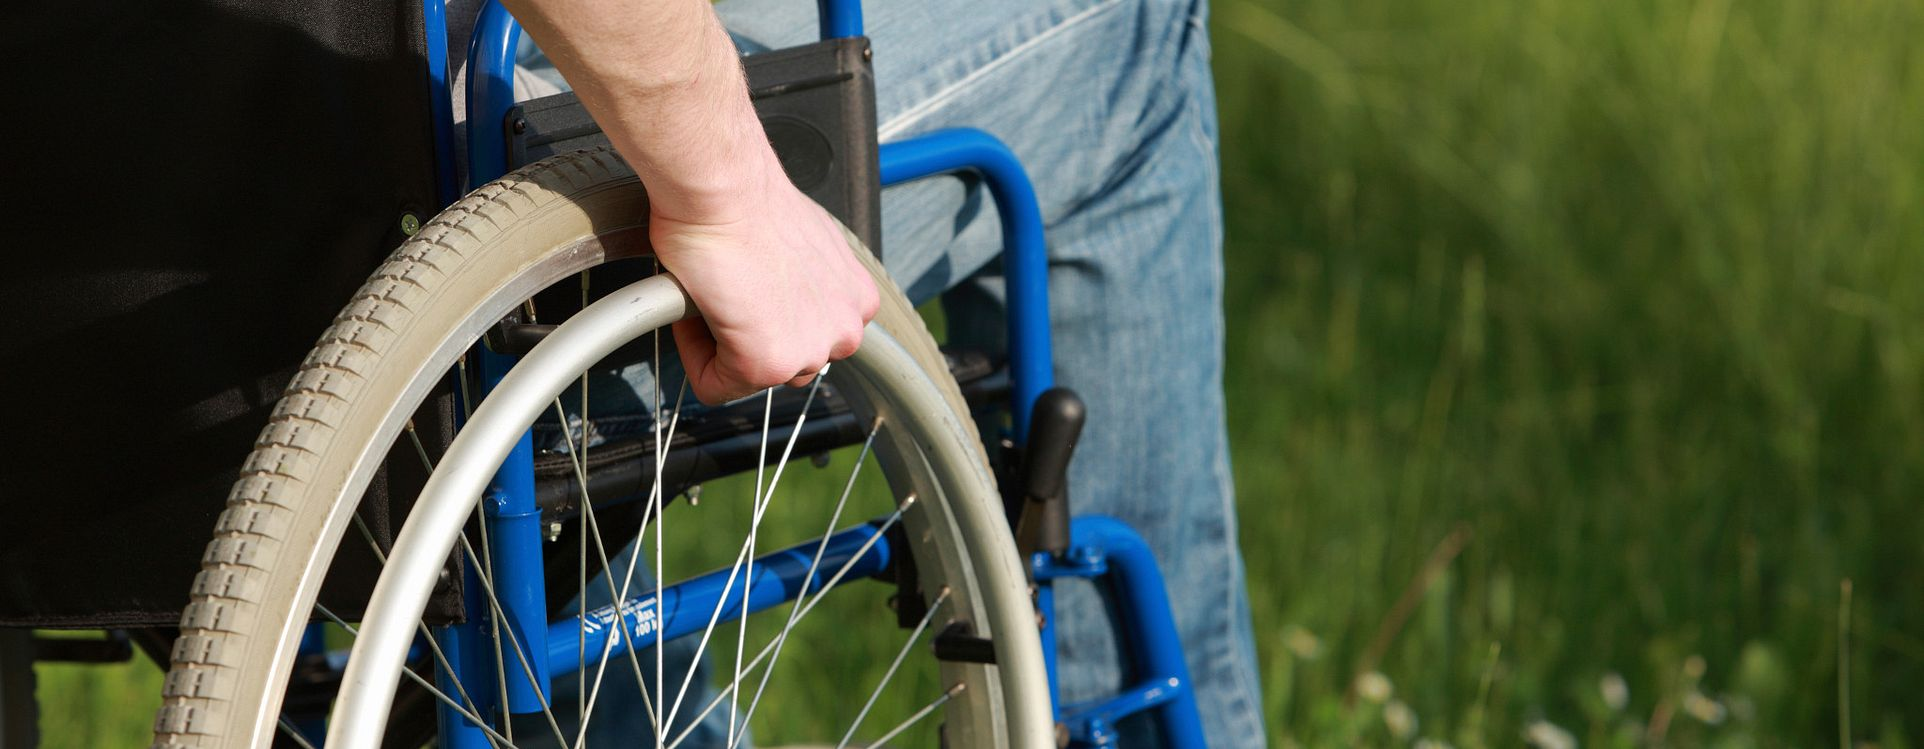 a man's arm gripping a wheelchair handrim